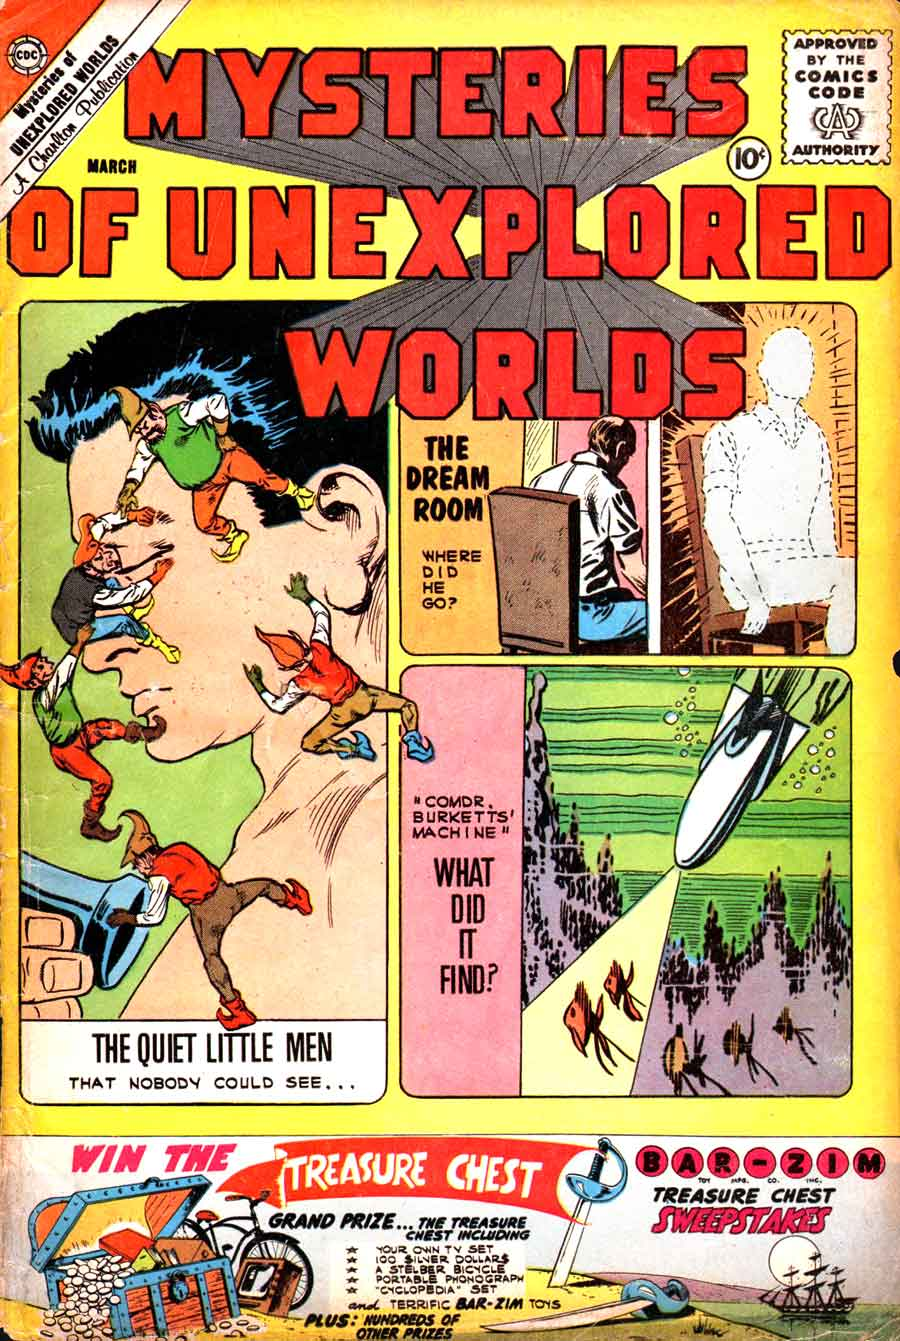 Mysteries of Unexplored Worlds v1 #23 charlton comic book cover art by Steve Ditko